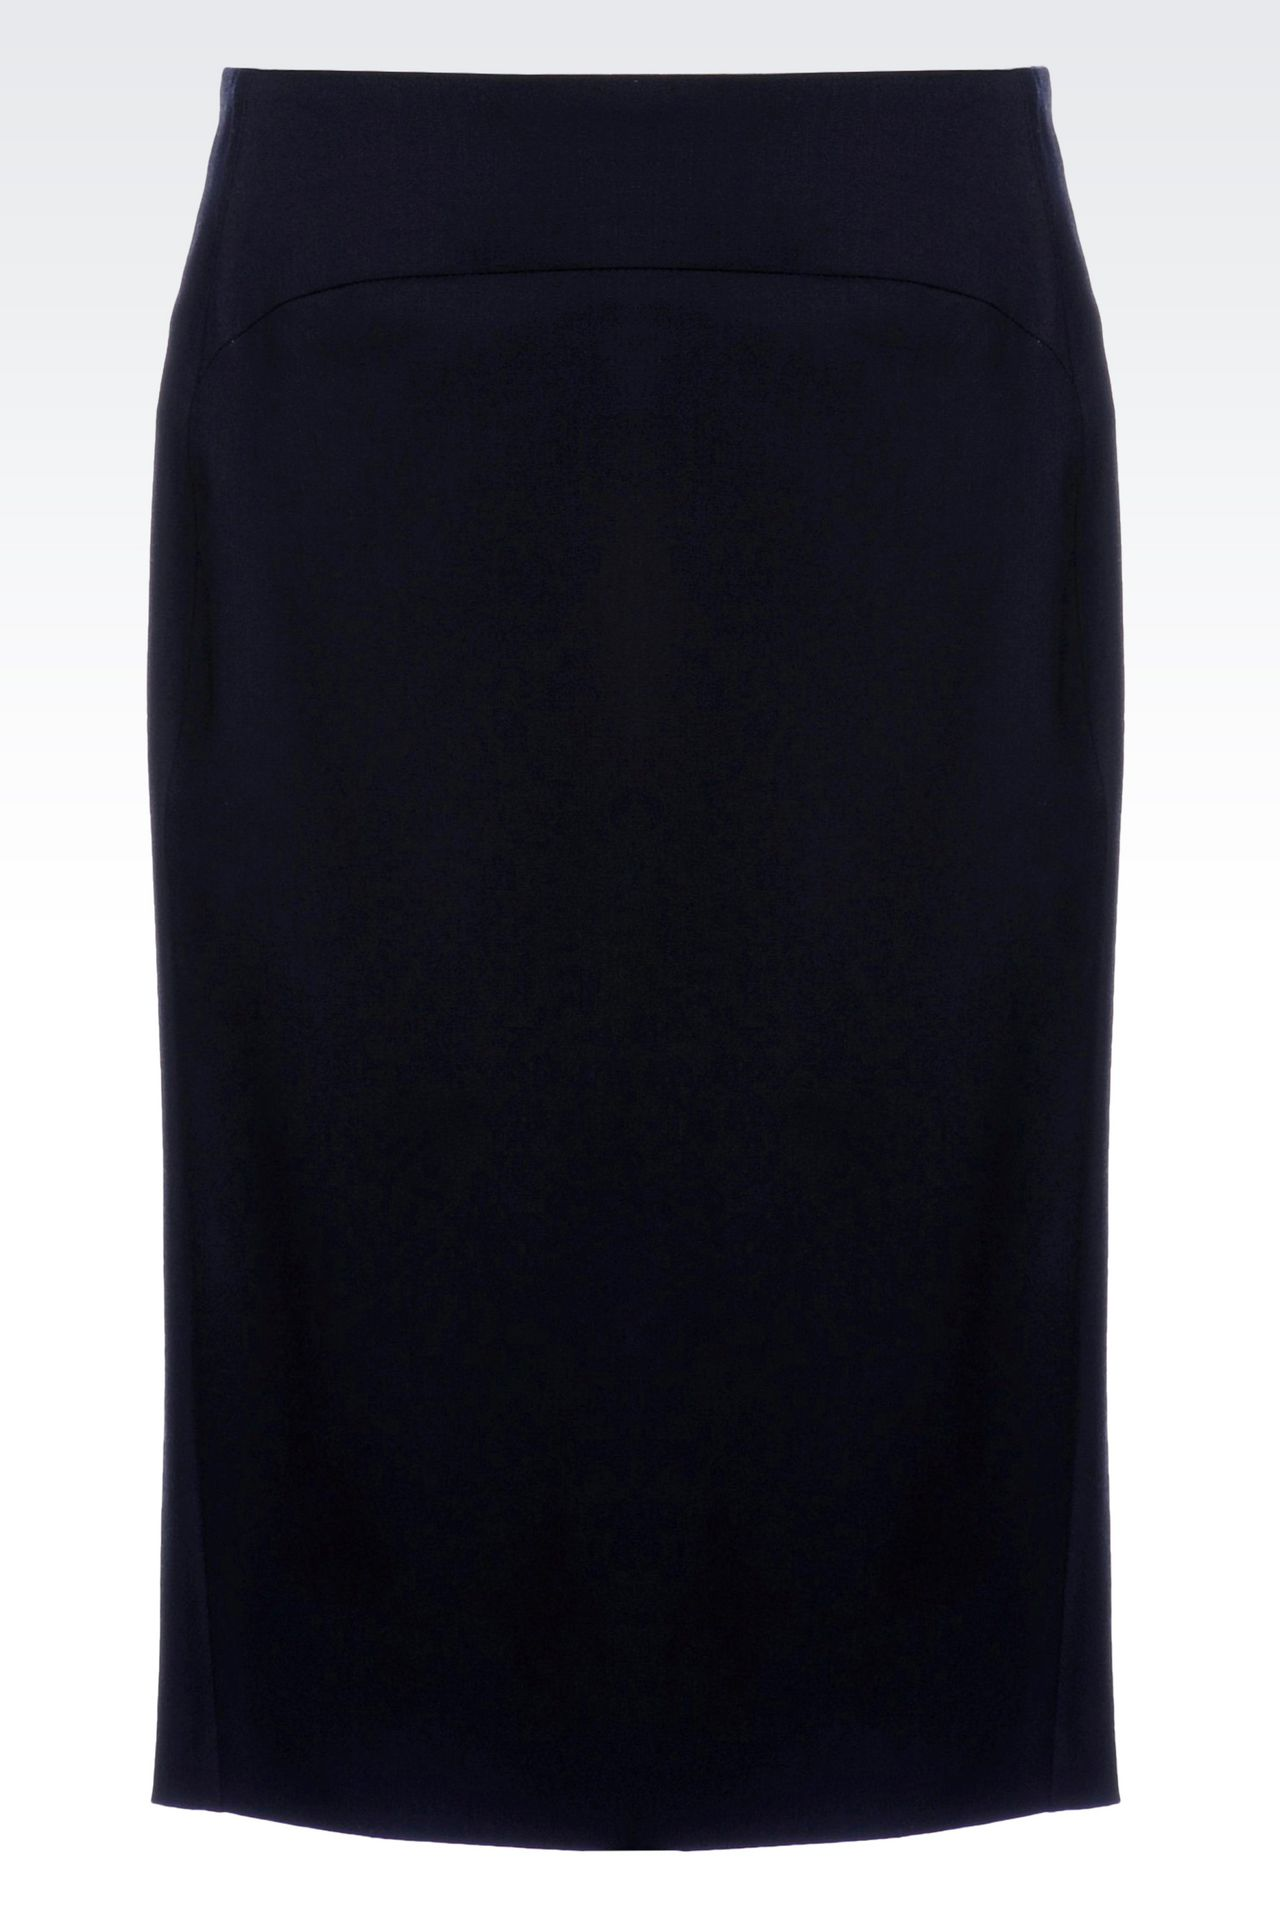 PENCIL SKIRT IN STRETCH WOOL: Knee length skirts Women by Armani - 0